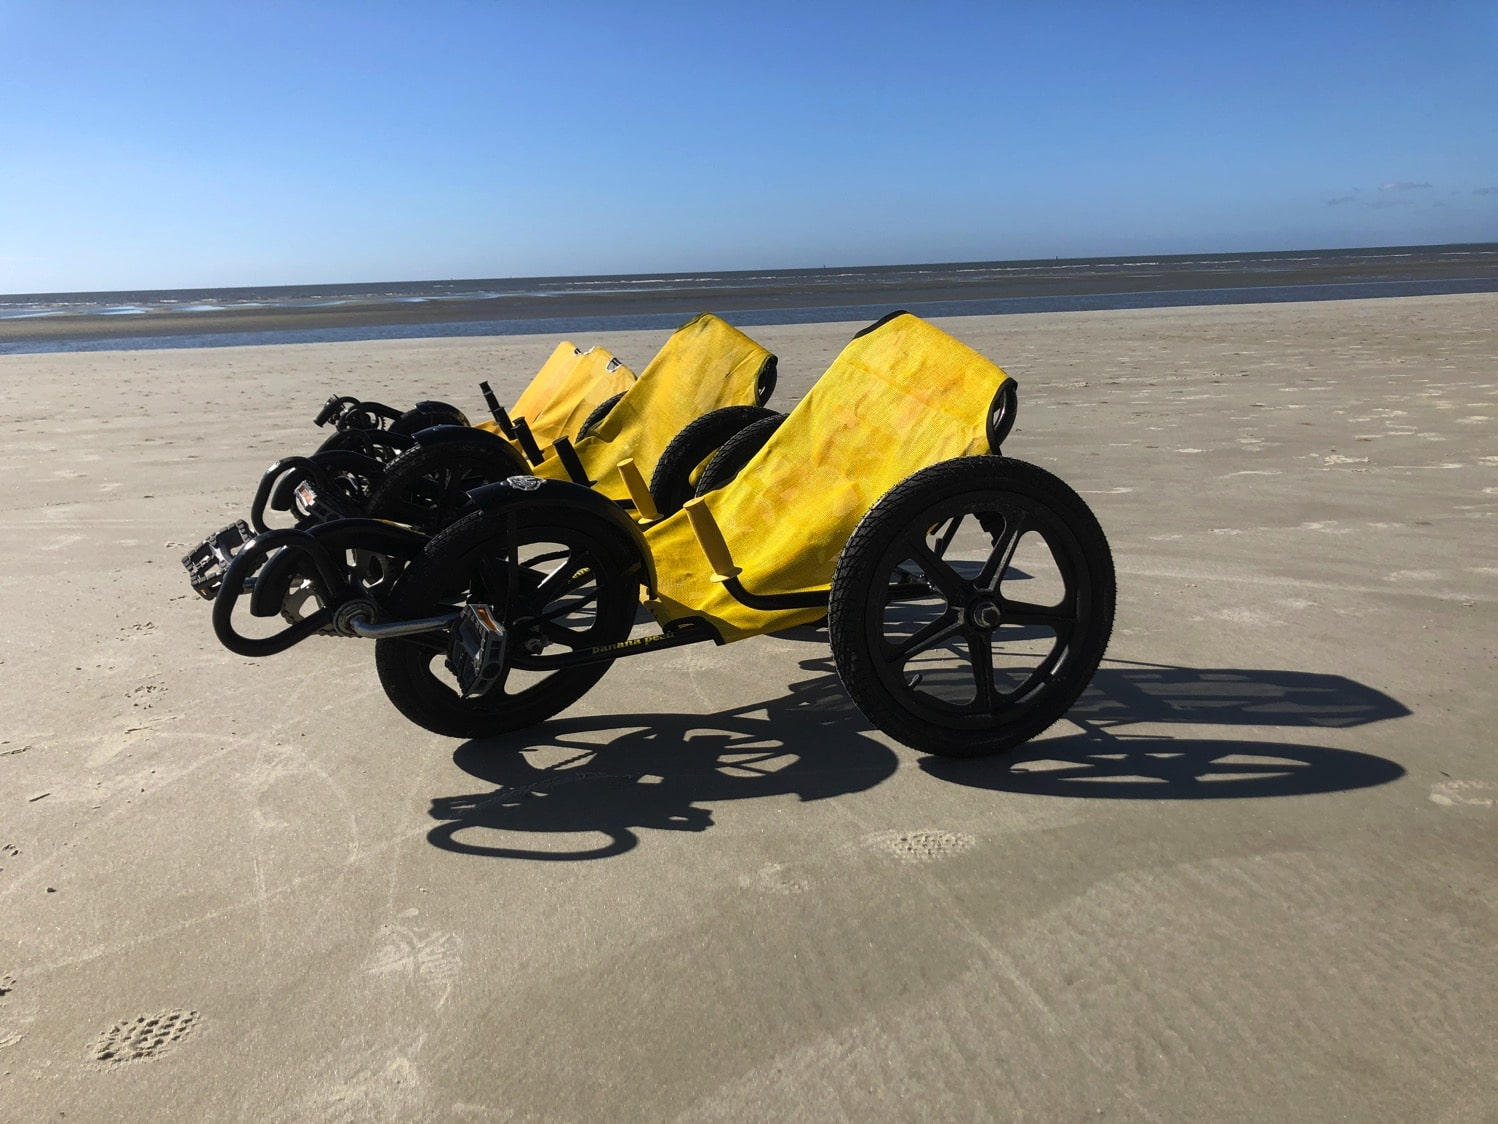 bike rentals on the beach at st. simons island